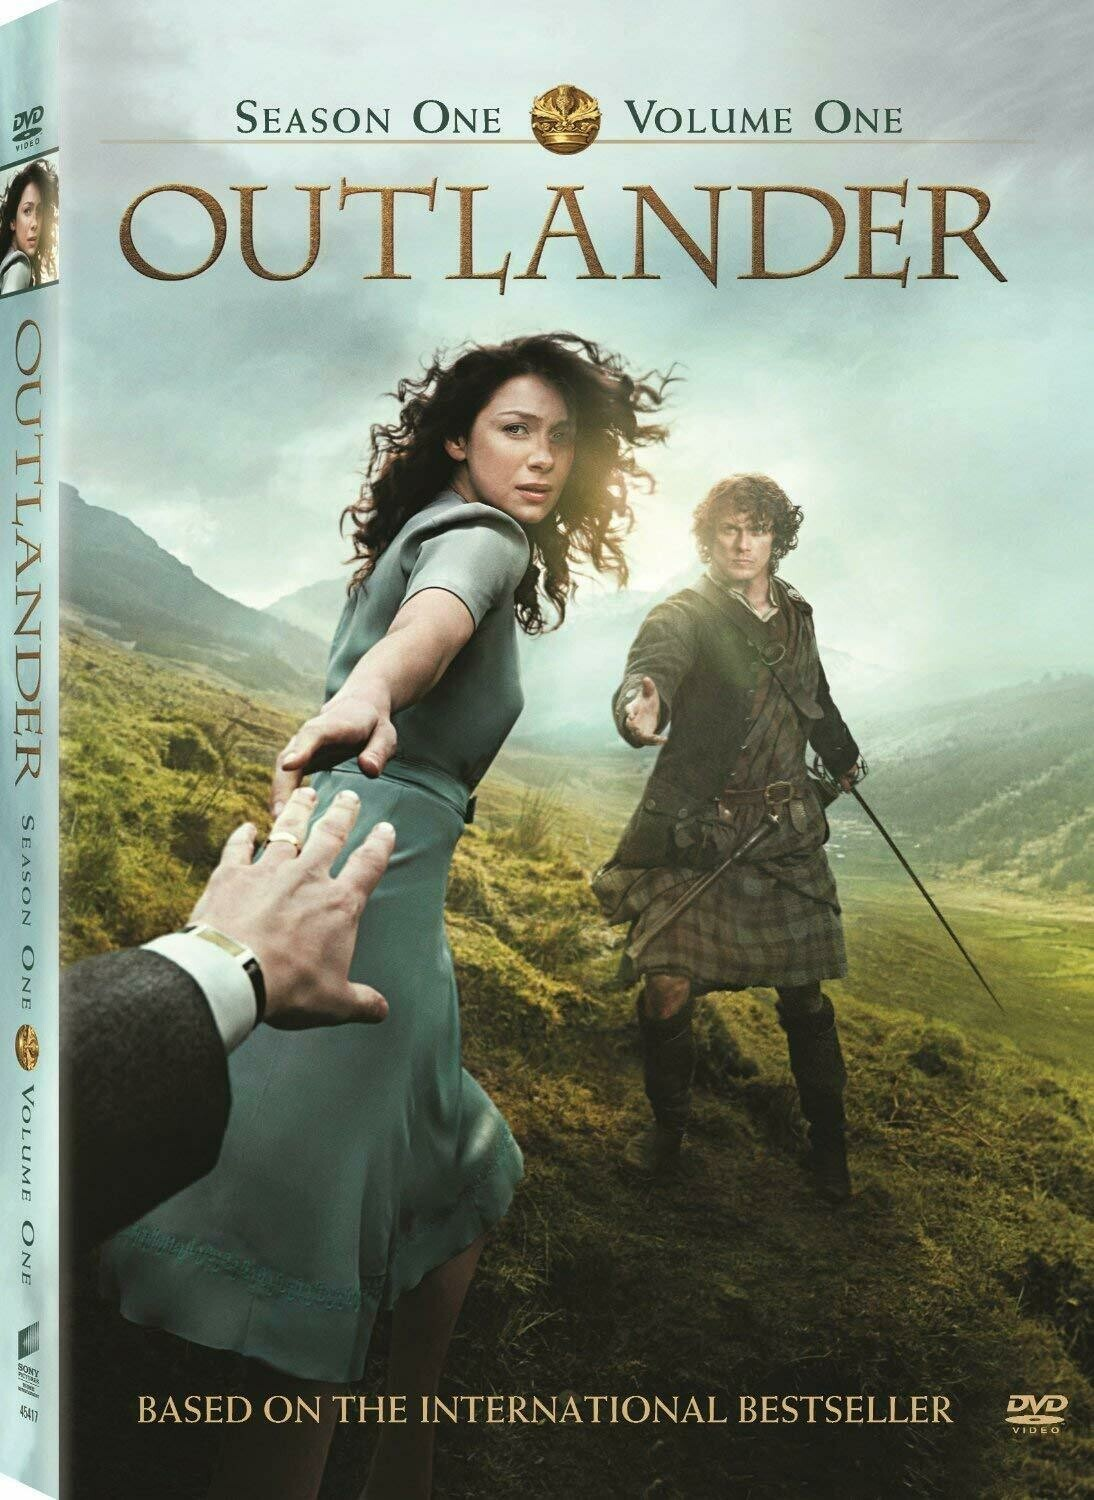 Outlander Season One Volume One (7 day rental)